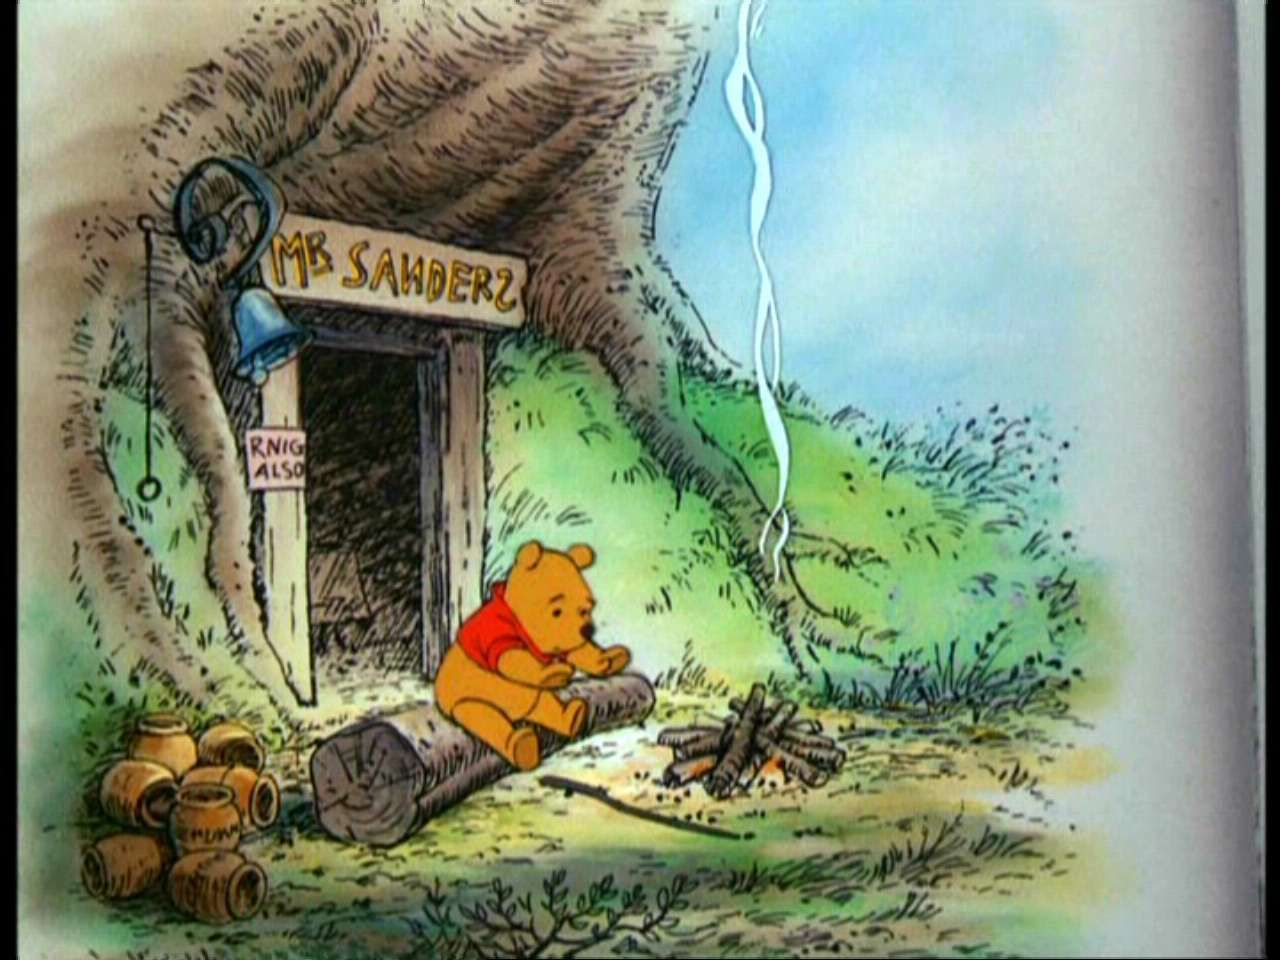 Winnie The Pooh Image Winnie The Pooh And The Hunny Tree Winnie The Pooh Pooh Pooh Bear